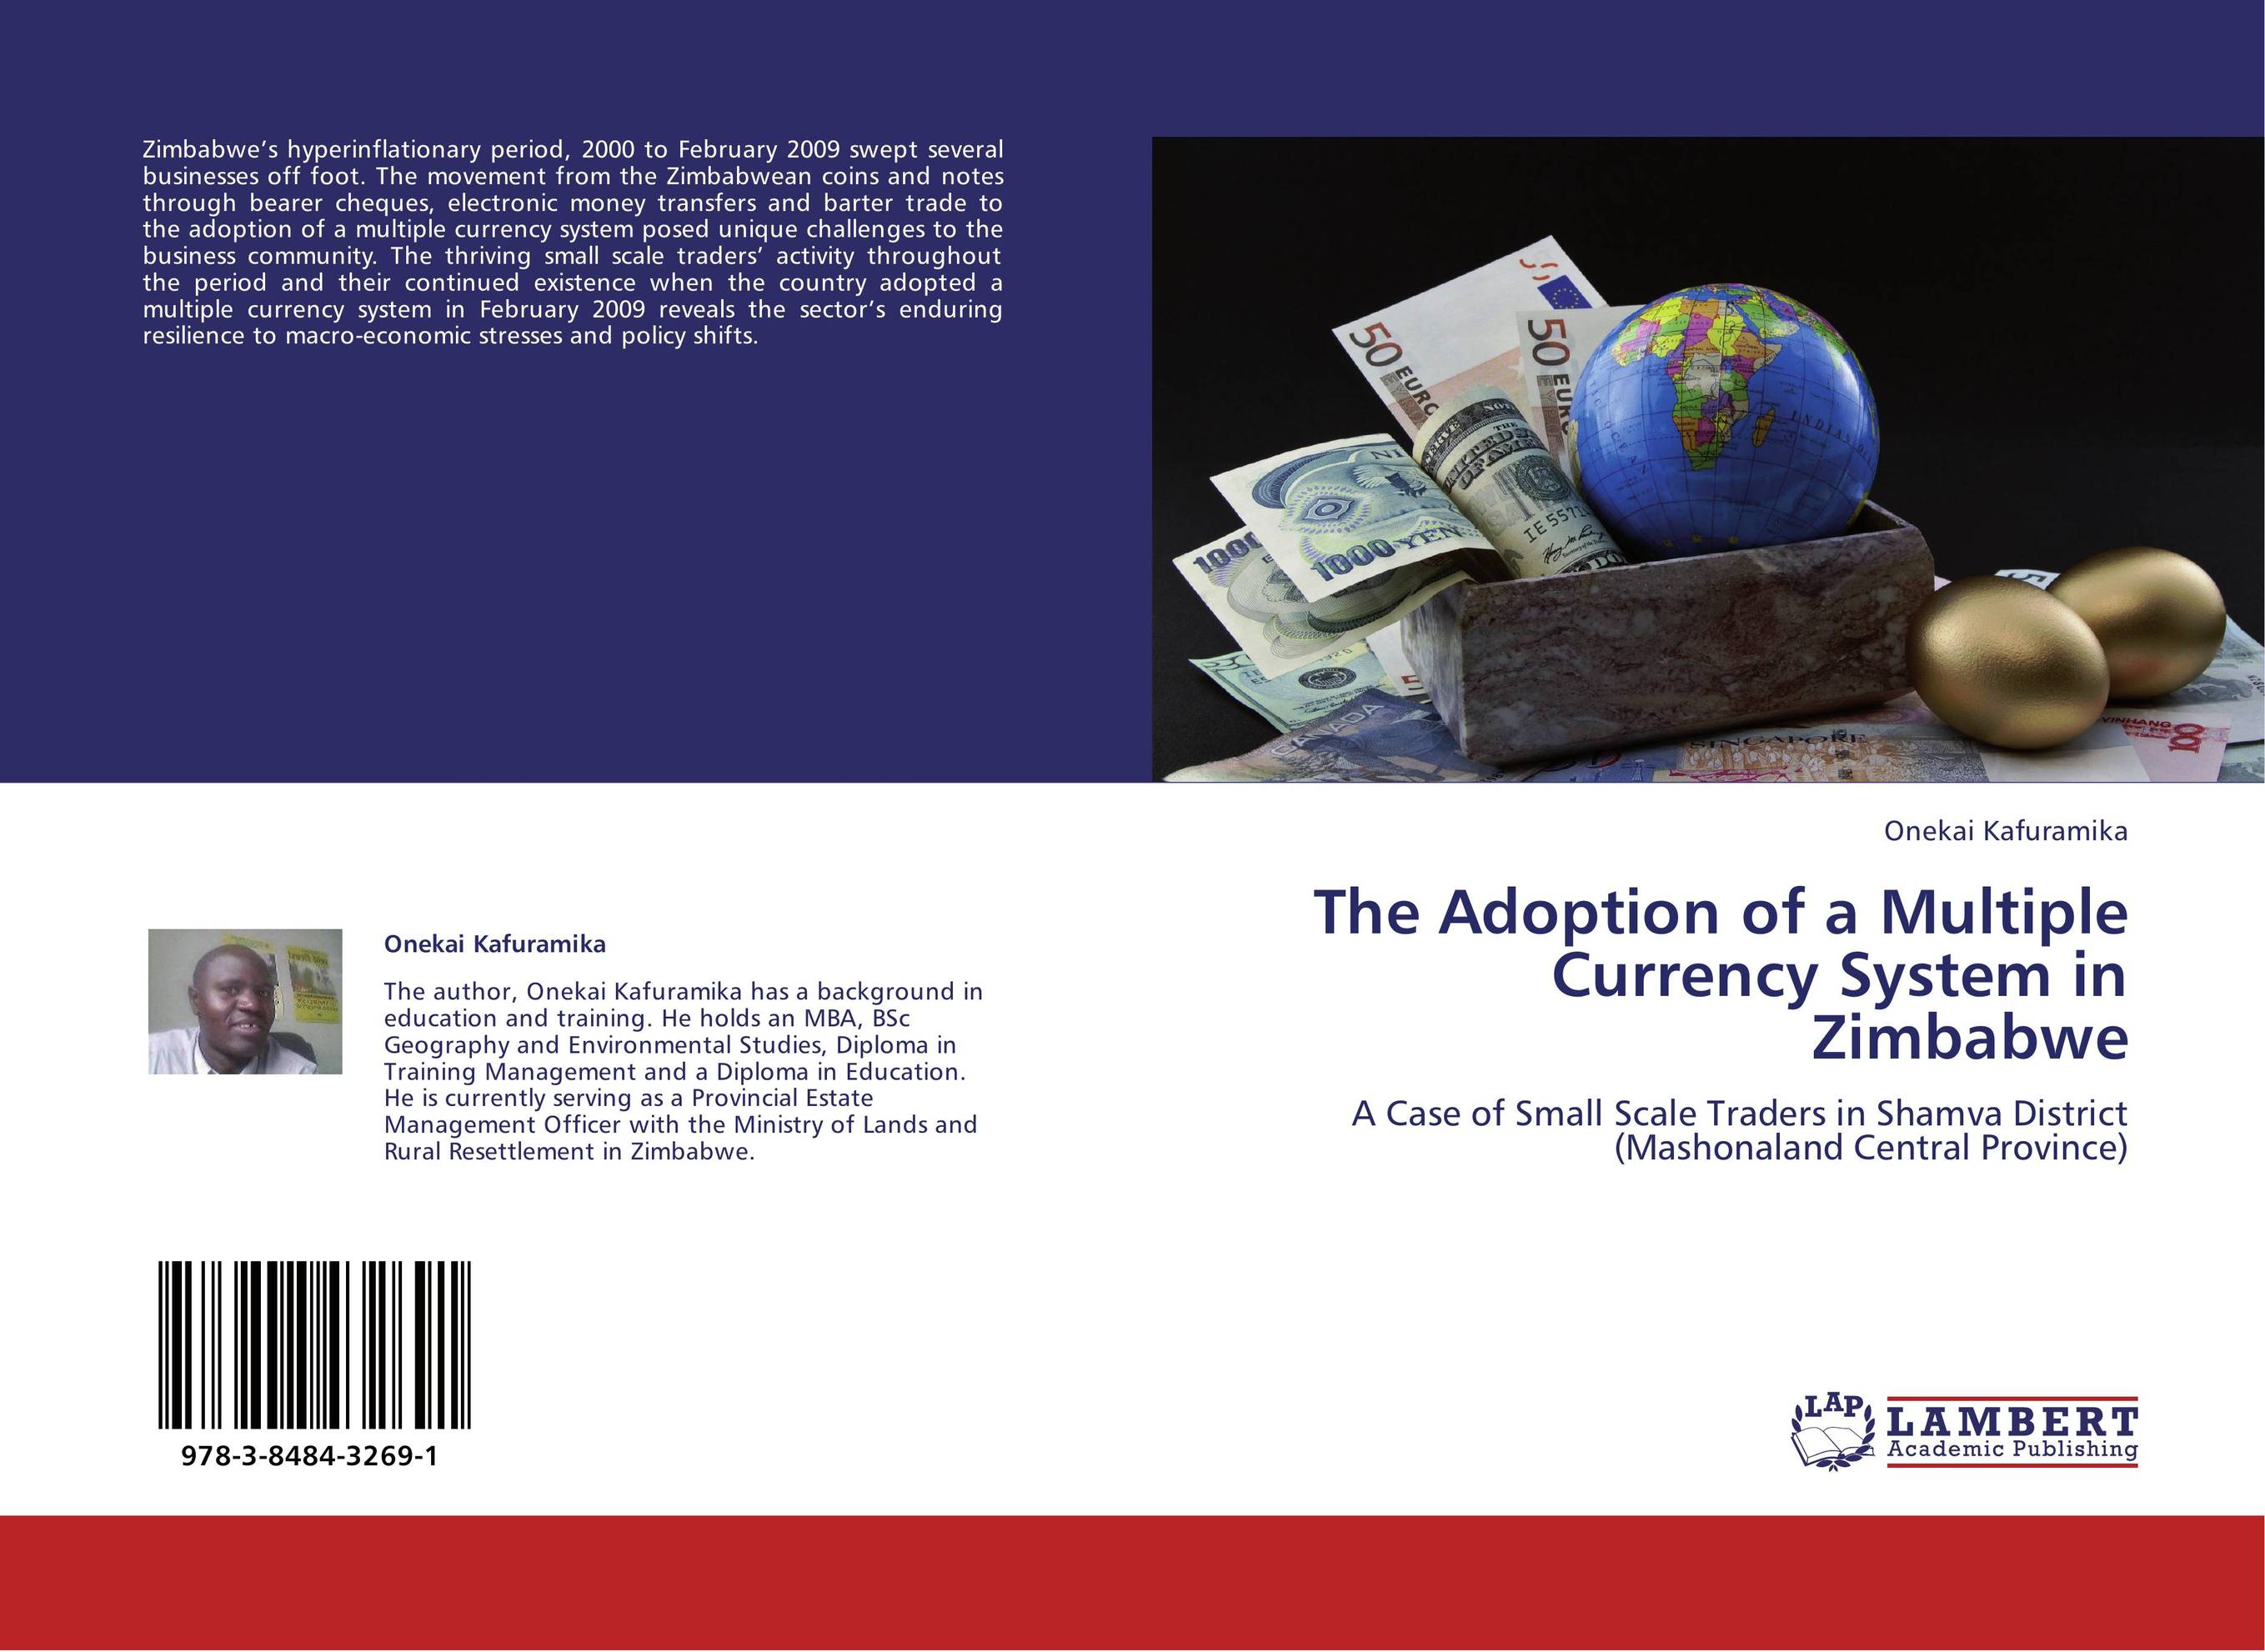 The Adoption of a Multiple Currency System in Zimbabwe psychiatric disorders in postpartum period